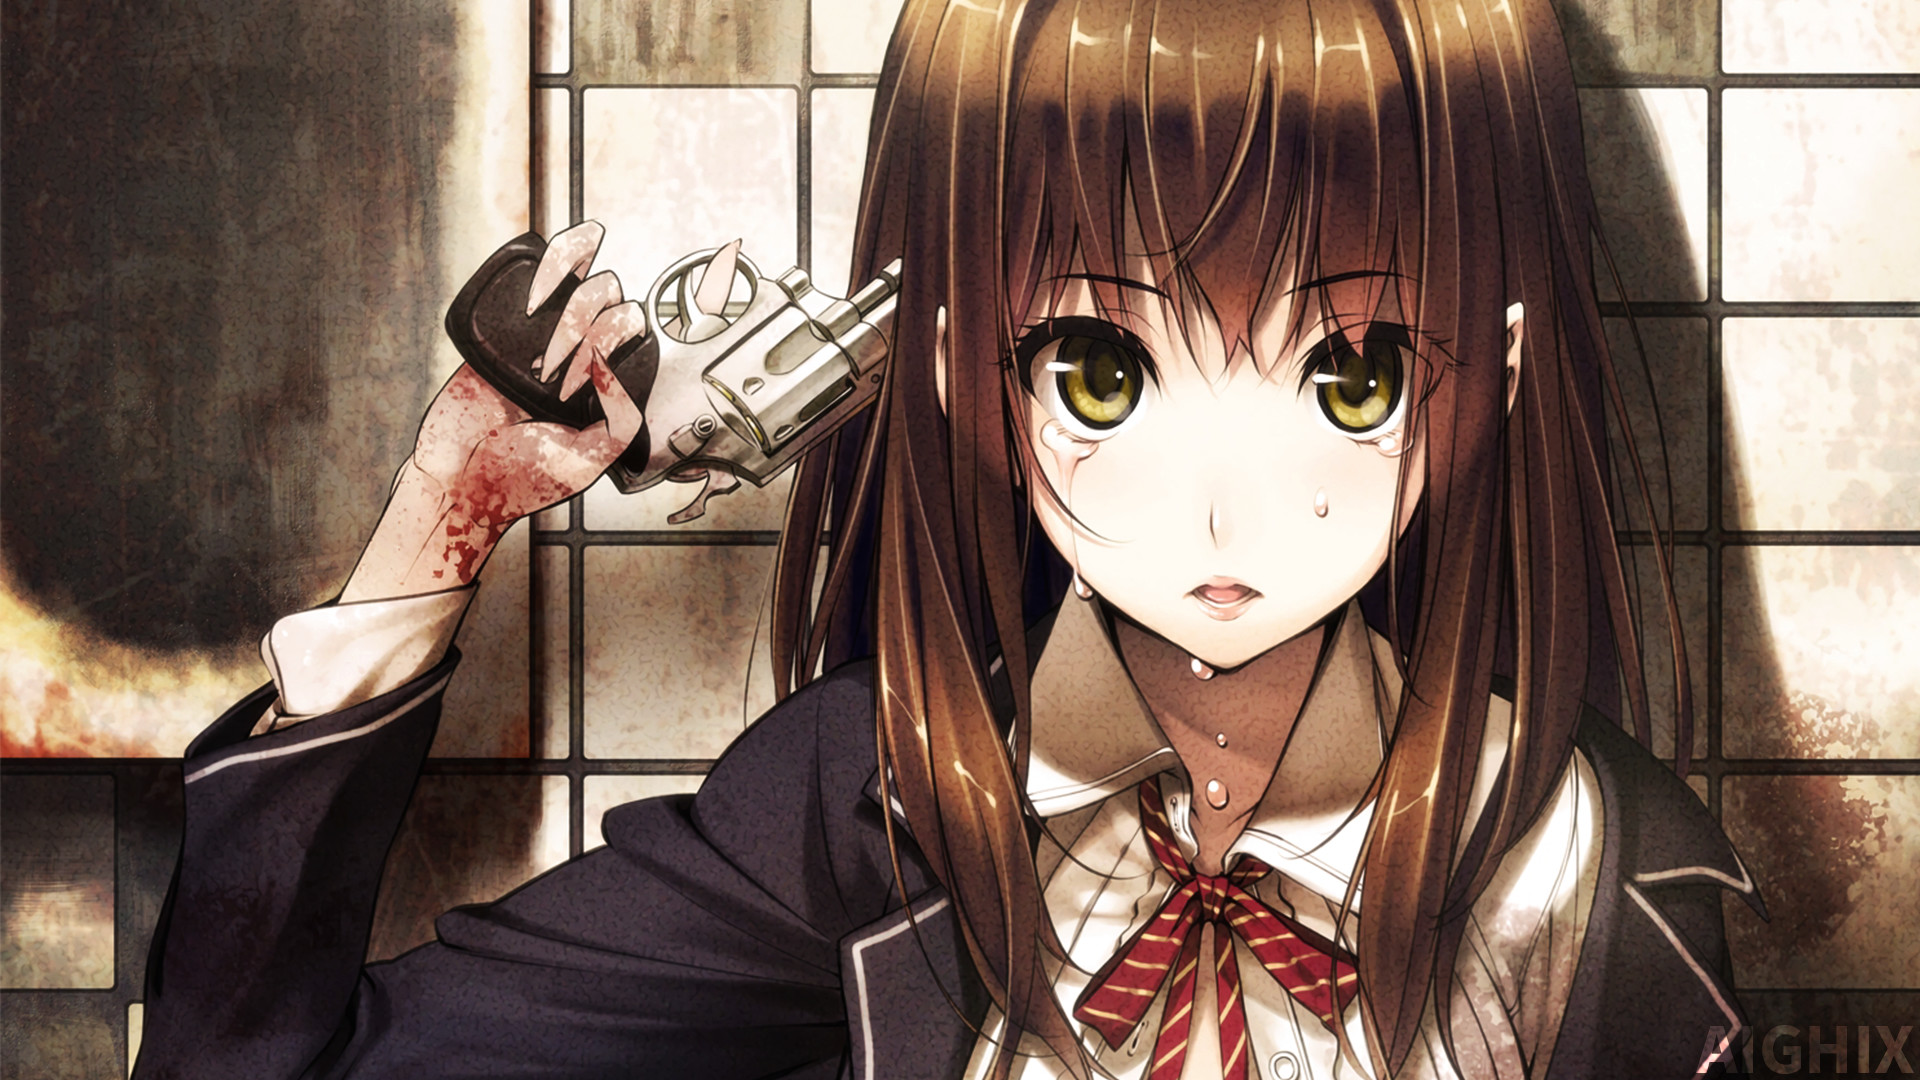 Res: 1920x1080, ... Sad Anime Girl With Gun Wallpaper by AIGHIX